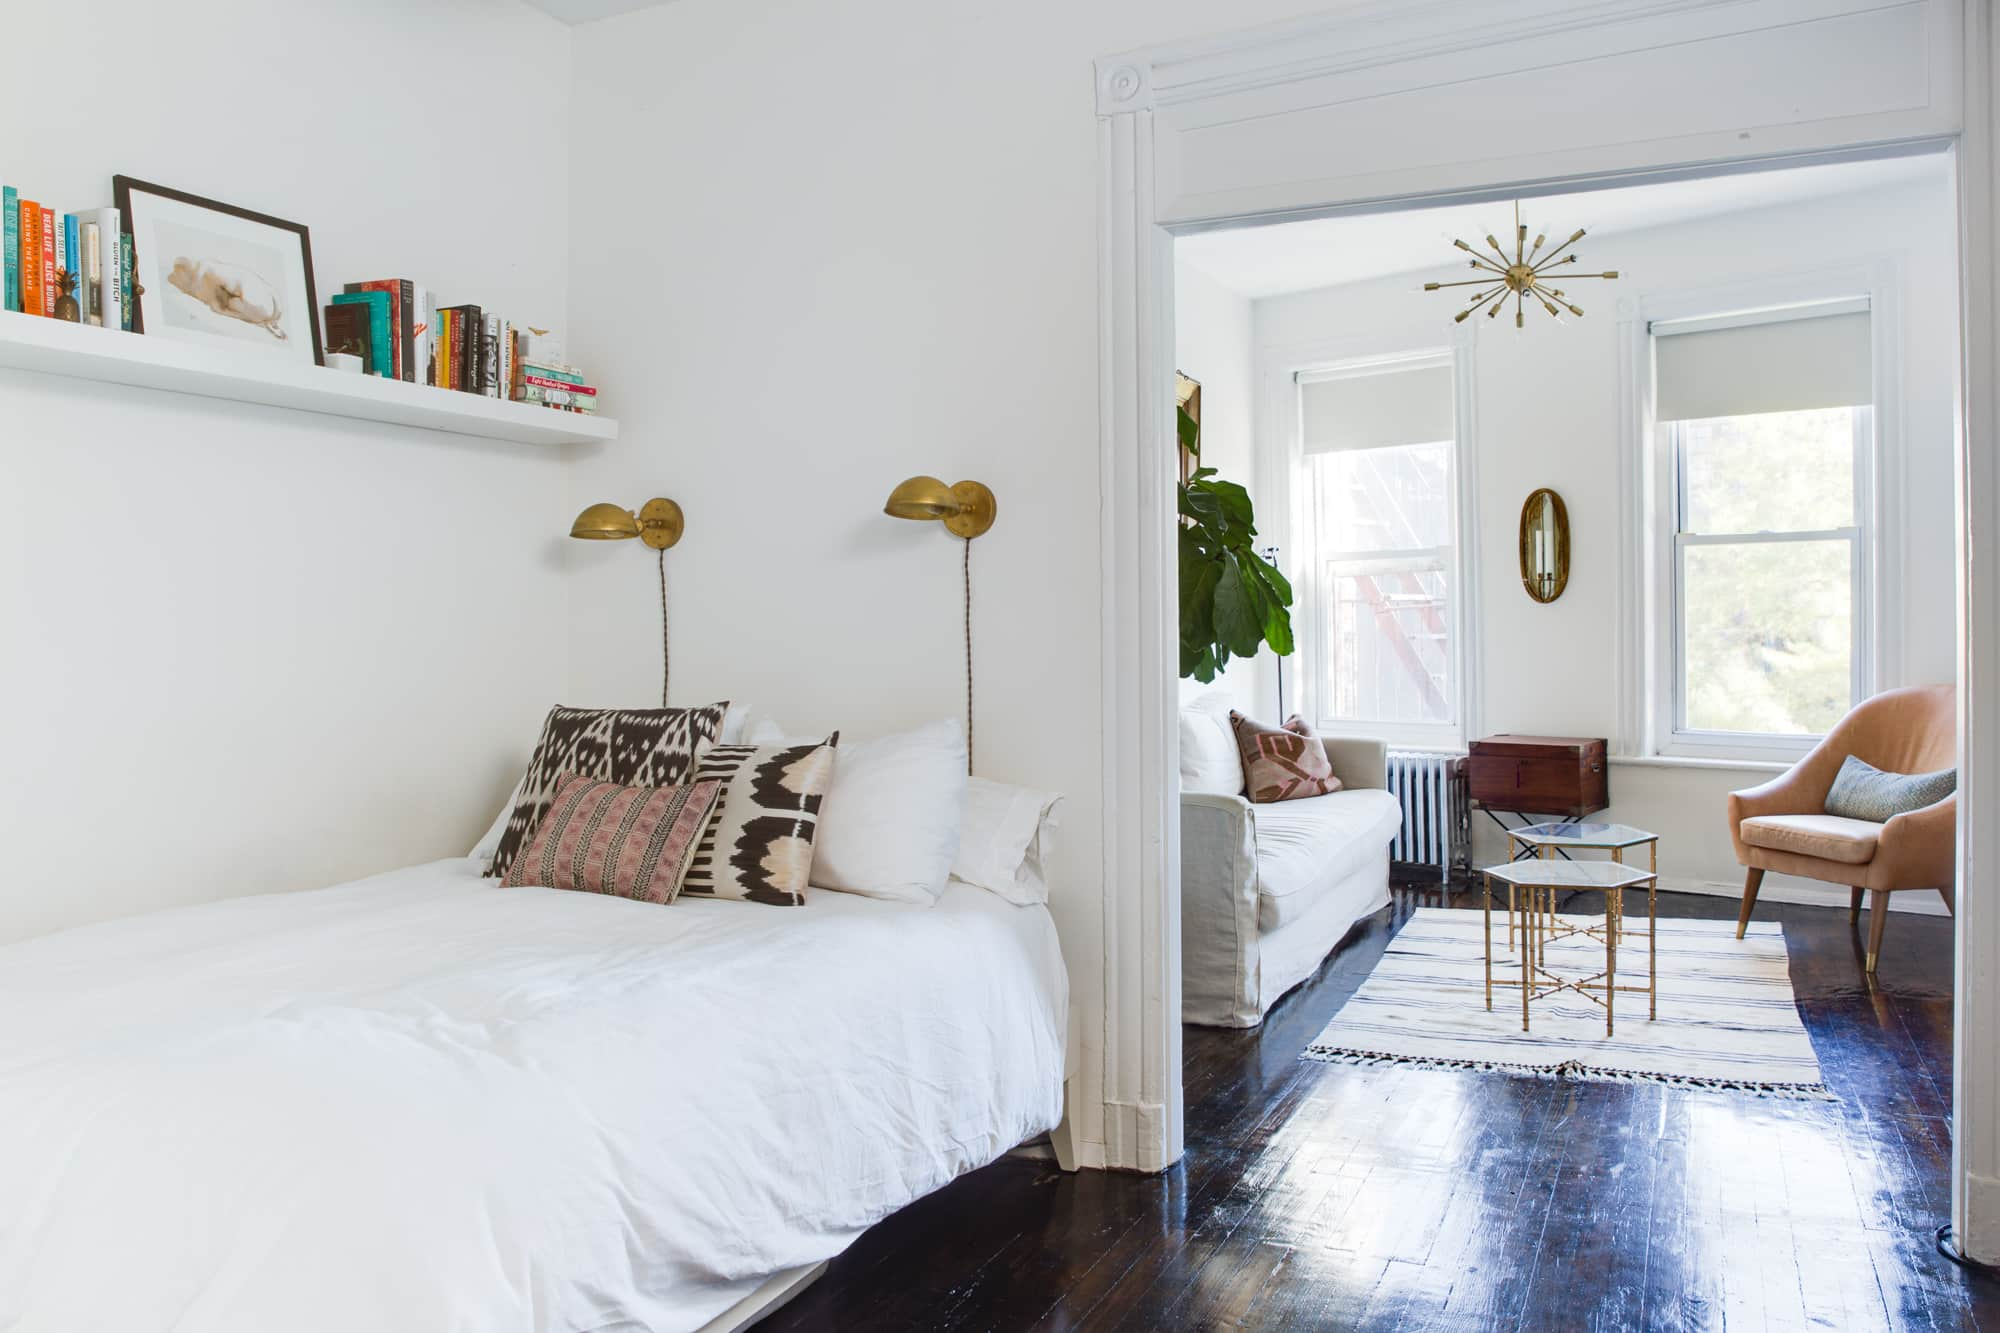 House Tour: NYC Railroad Apartment Design Solutions